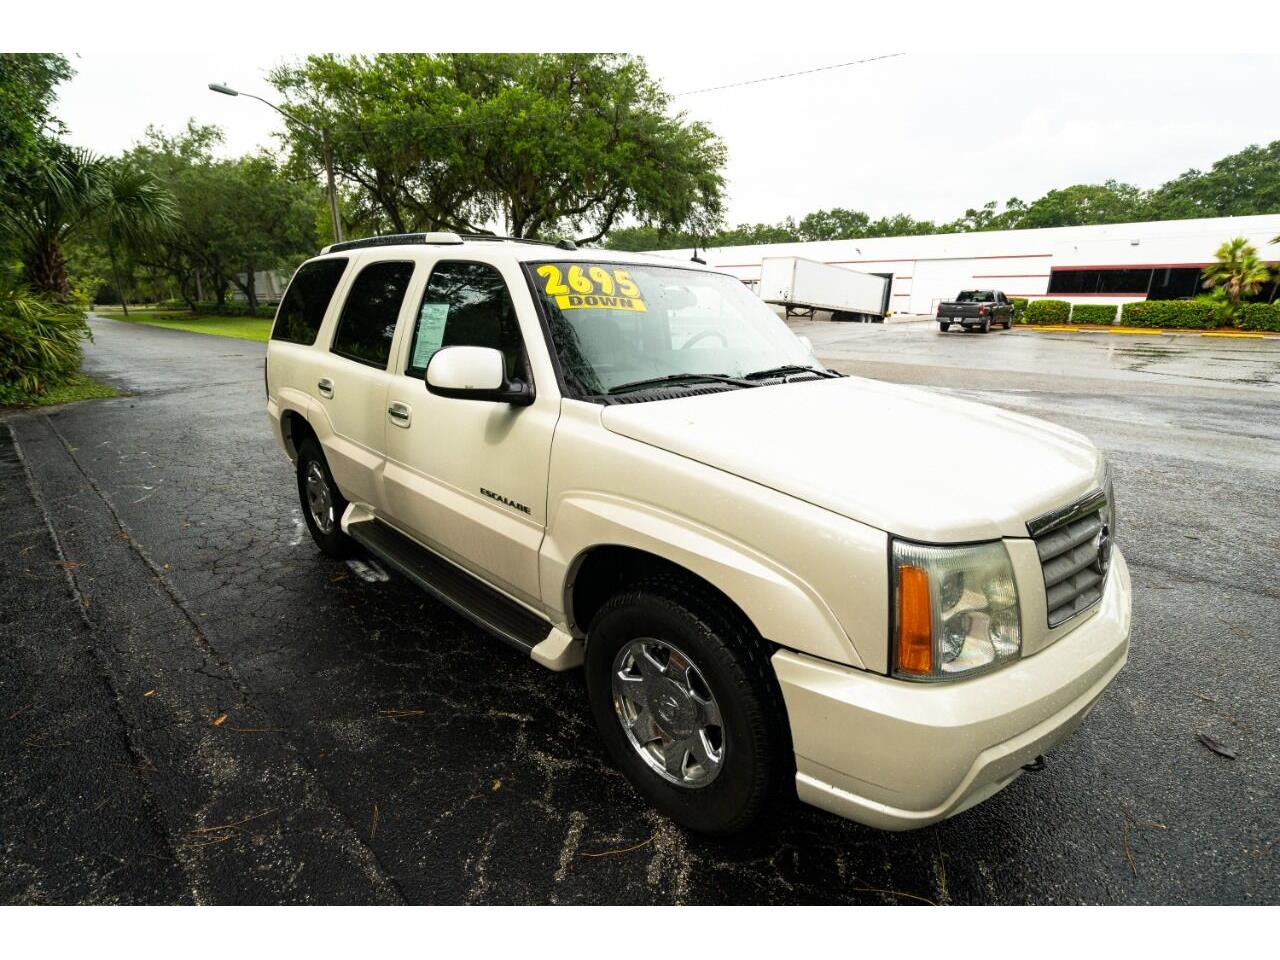 2004 cadillac escalade for sale classiccars com cc 1379865 2004 cadillac escalade for sale